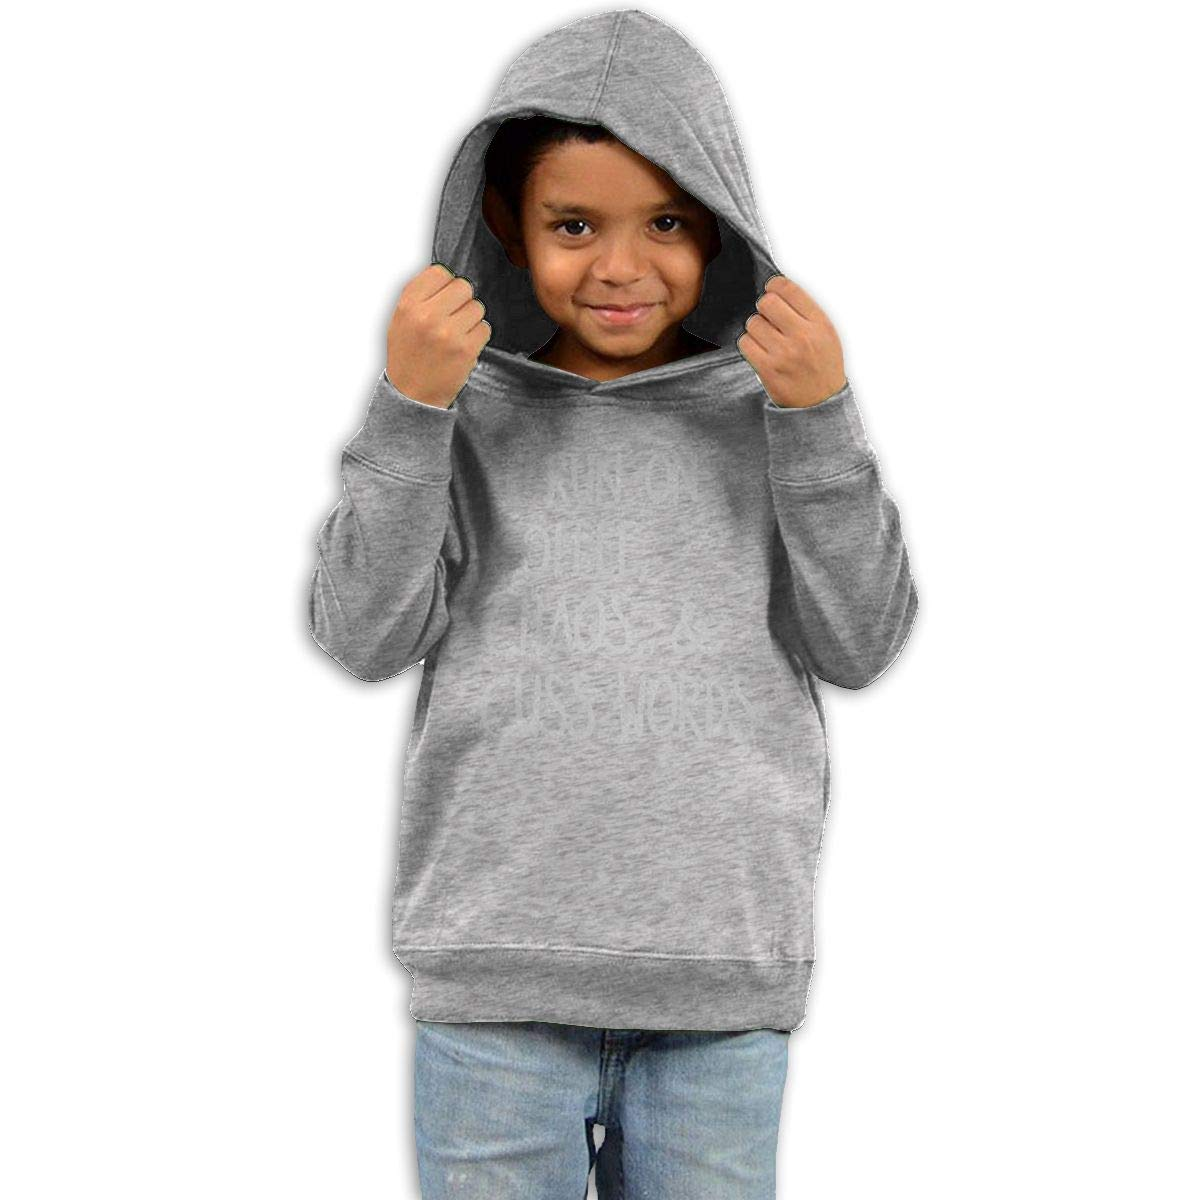 Childrens Hooded Sweater I Run On Coffee Chaos and Cuss Words Girl Sweater Black